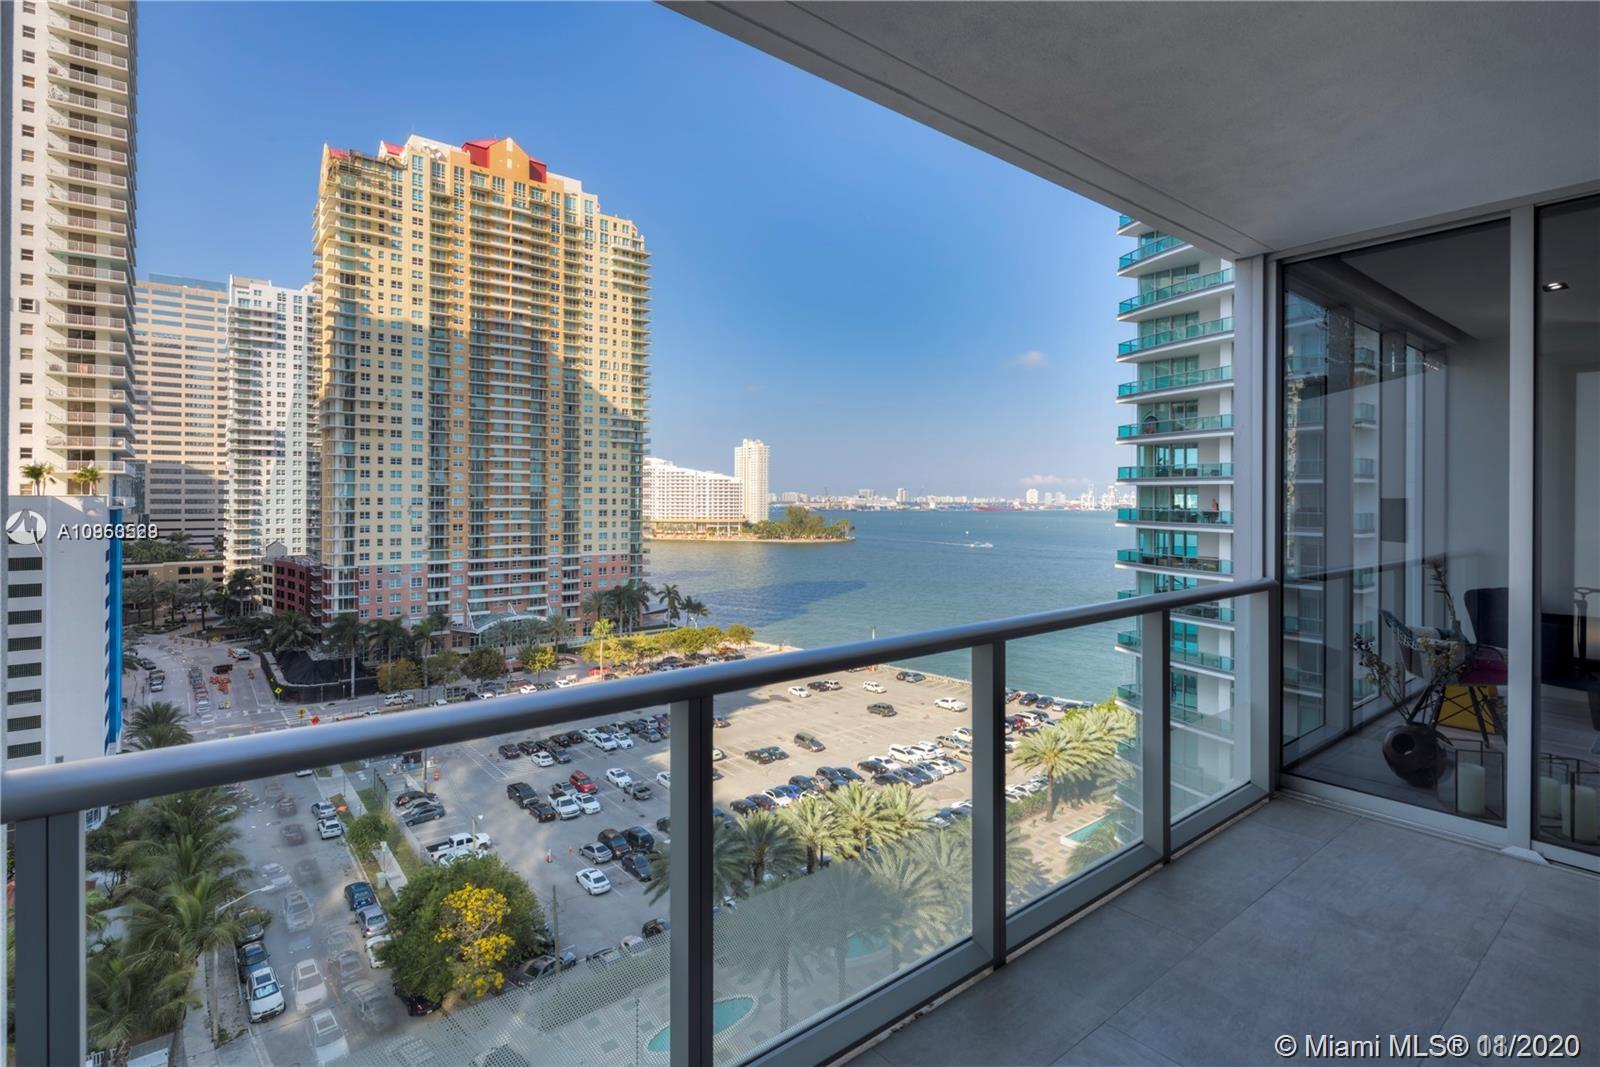 Best priced waterfront unit, with panoramic city and bay views. One of the largest Brickell house floor plans.  A very rare corner unit that gives you privacy while enjoying spectacular views.  Fully remodeled: upgraded custom-made closets, Italian porcelain floors, nest thermostat, electronic shades, upgraded lighting & bathroom. Plenty of storage space. Large balcony.  Far from the busiest areas of Brickell but close enough to all the action.  Centrally located area of Brickell. One of the newest buildings in the area, with incredible views, amazing amenities, two pools including a rooftop community pool.  Top restaurants as part of your amenities.  One of the safest areas of Brickell, off Brickell Bay Drive. A great place for anyone wanting to live their dreams out.